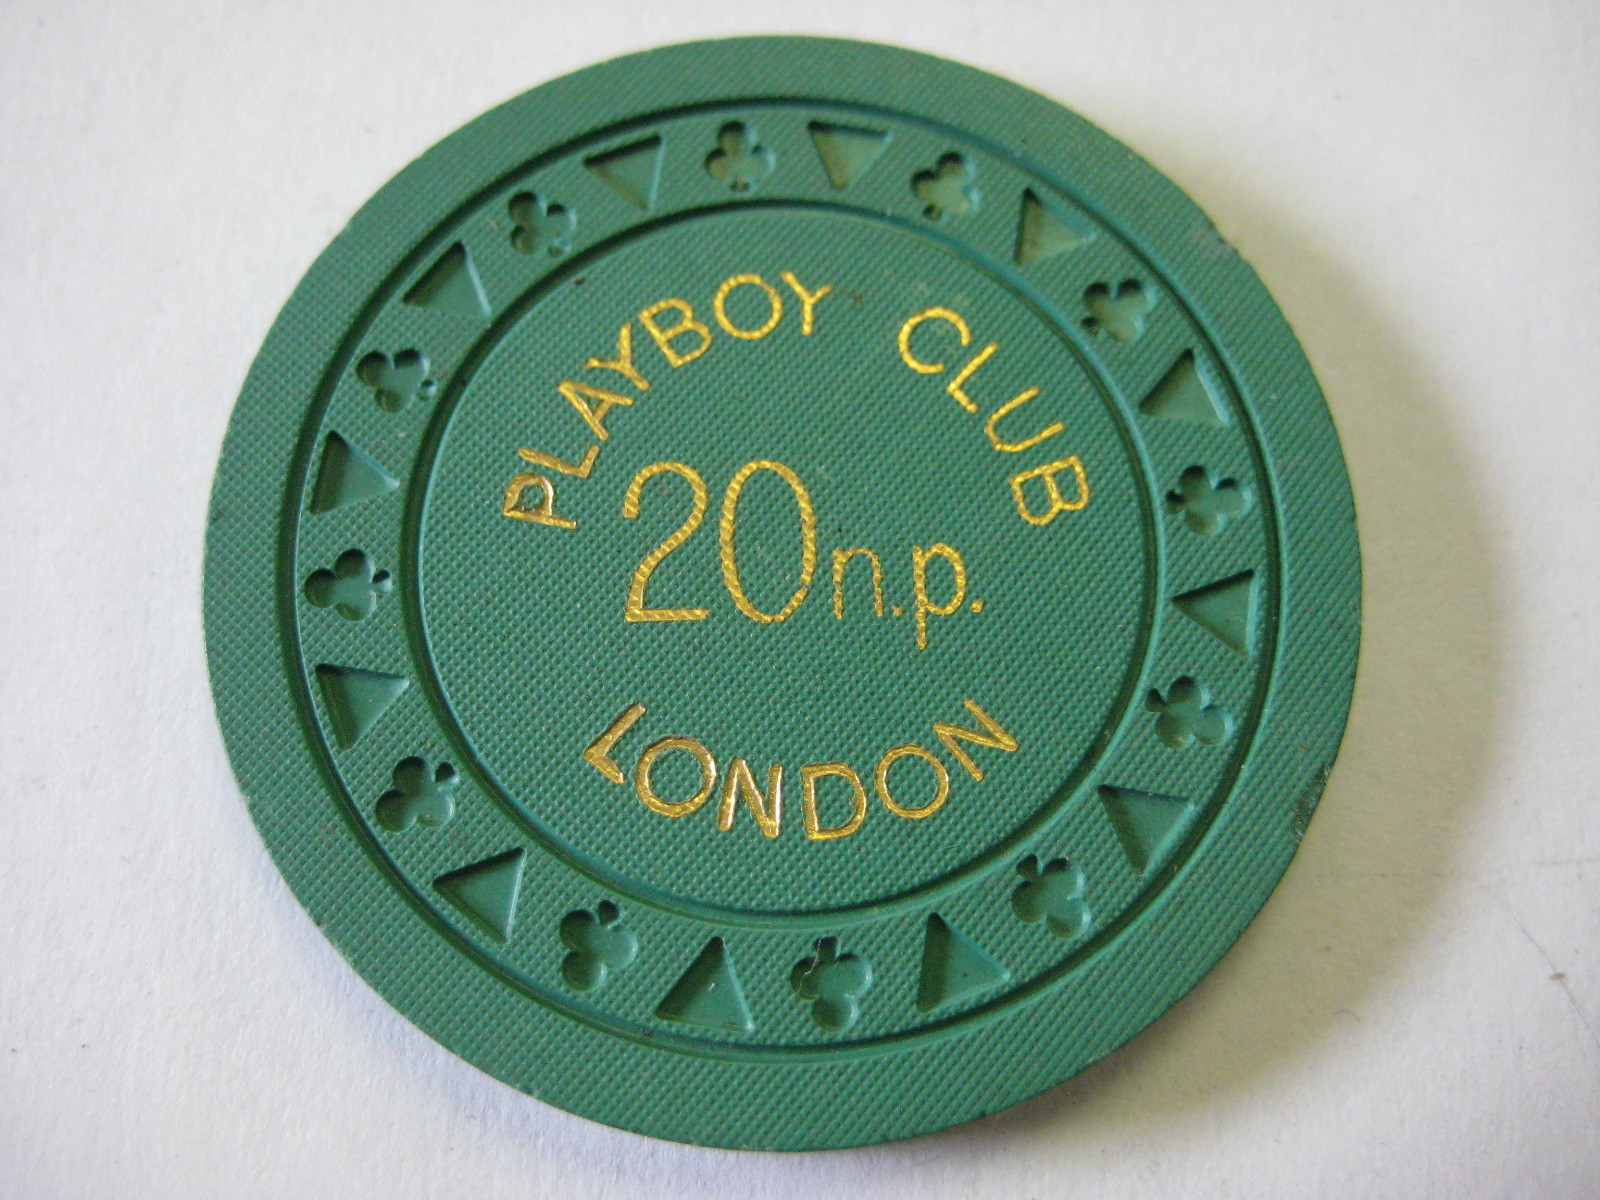 1971 Triclub 20 New Pence London Playboy Club Casino